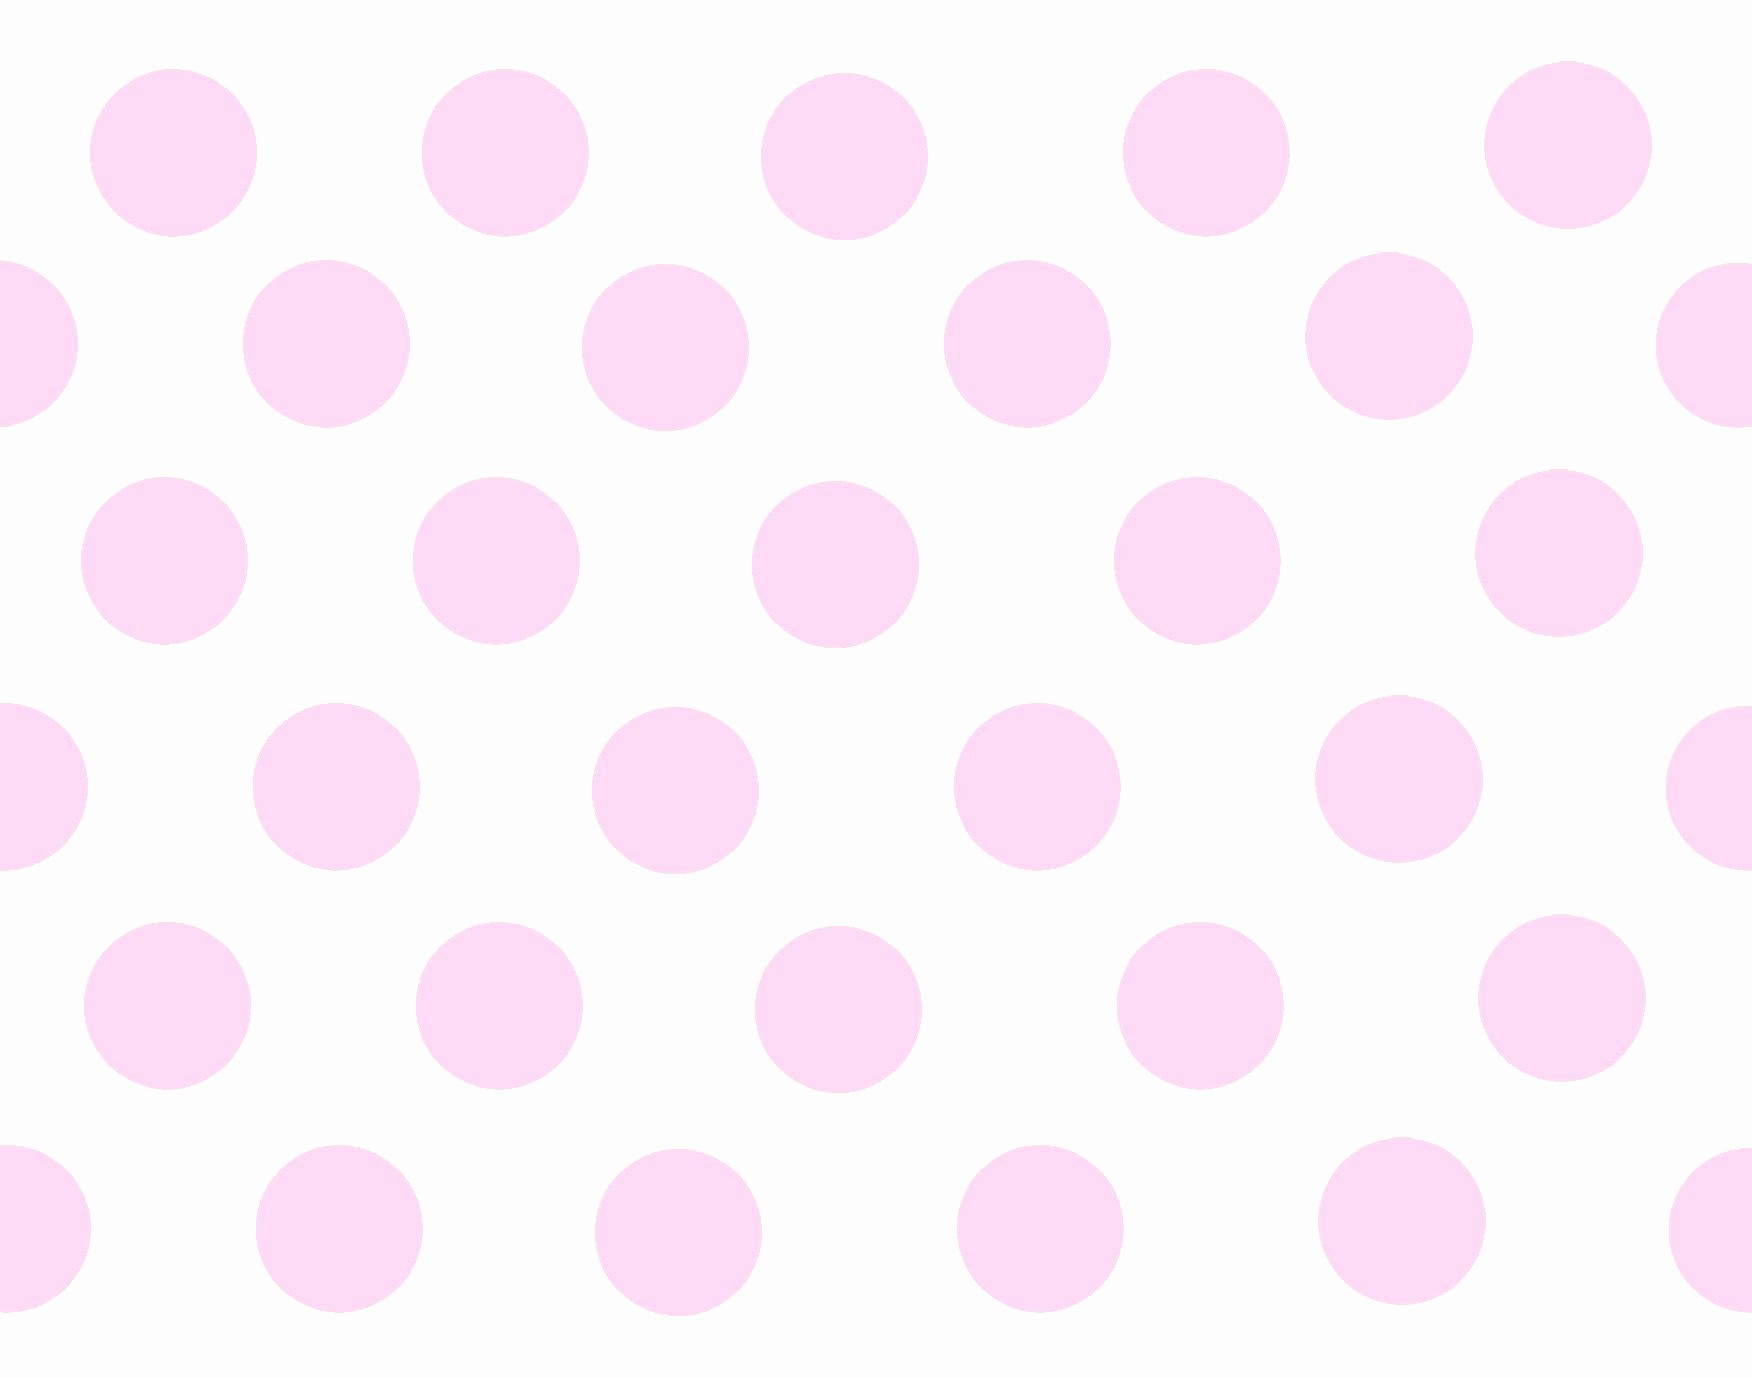 Polka Dot Template for Word Best Of Cute Polka Dot Backgrounds